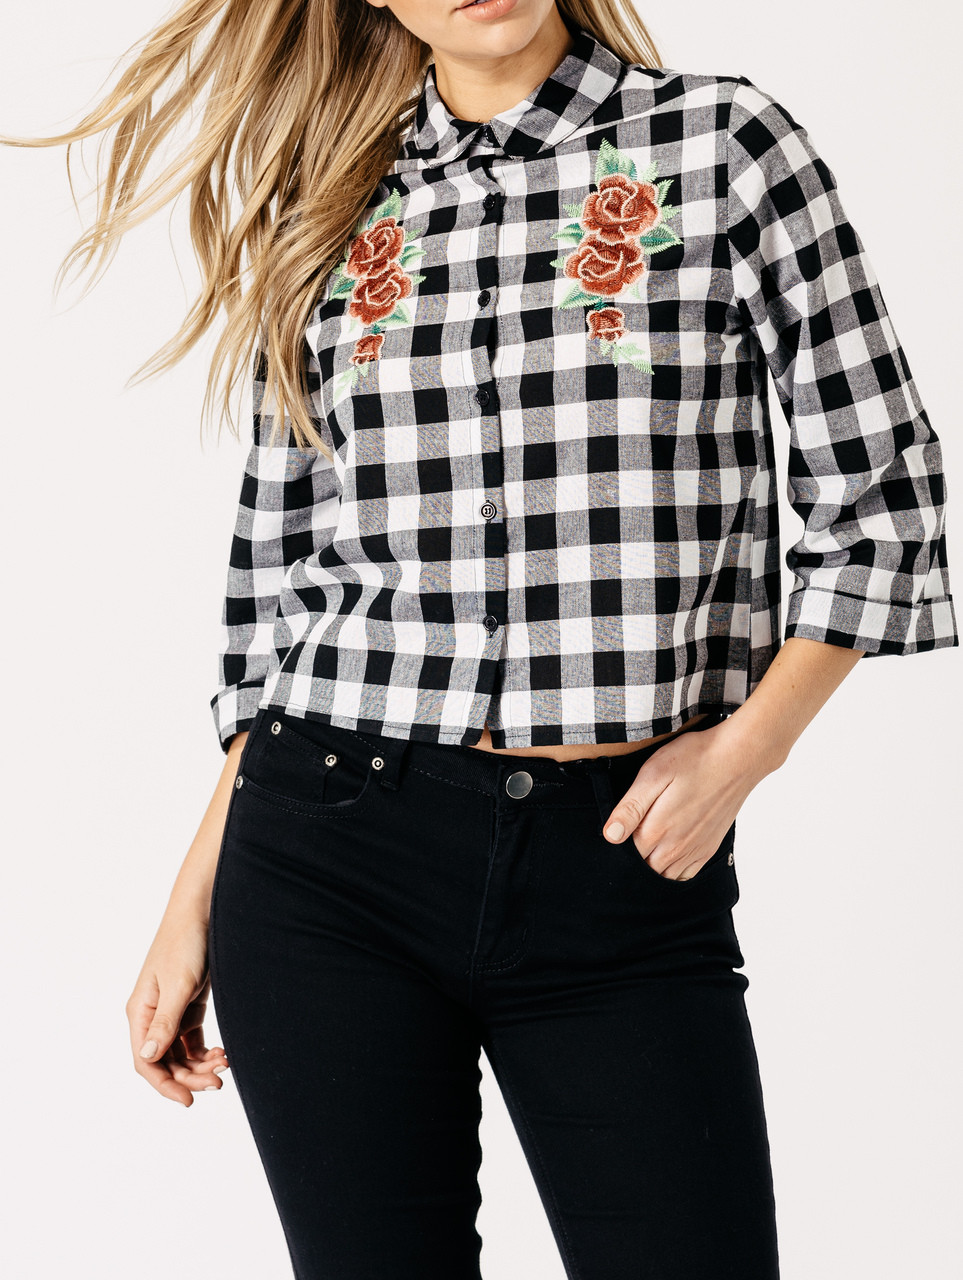 Black and White Monochrome Check Floral Embroidered Shirt